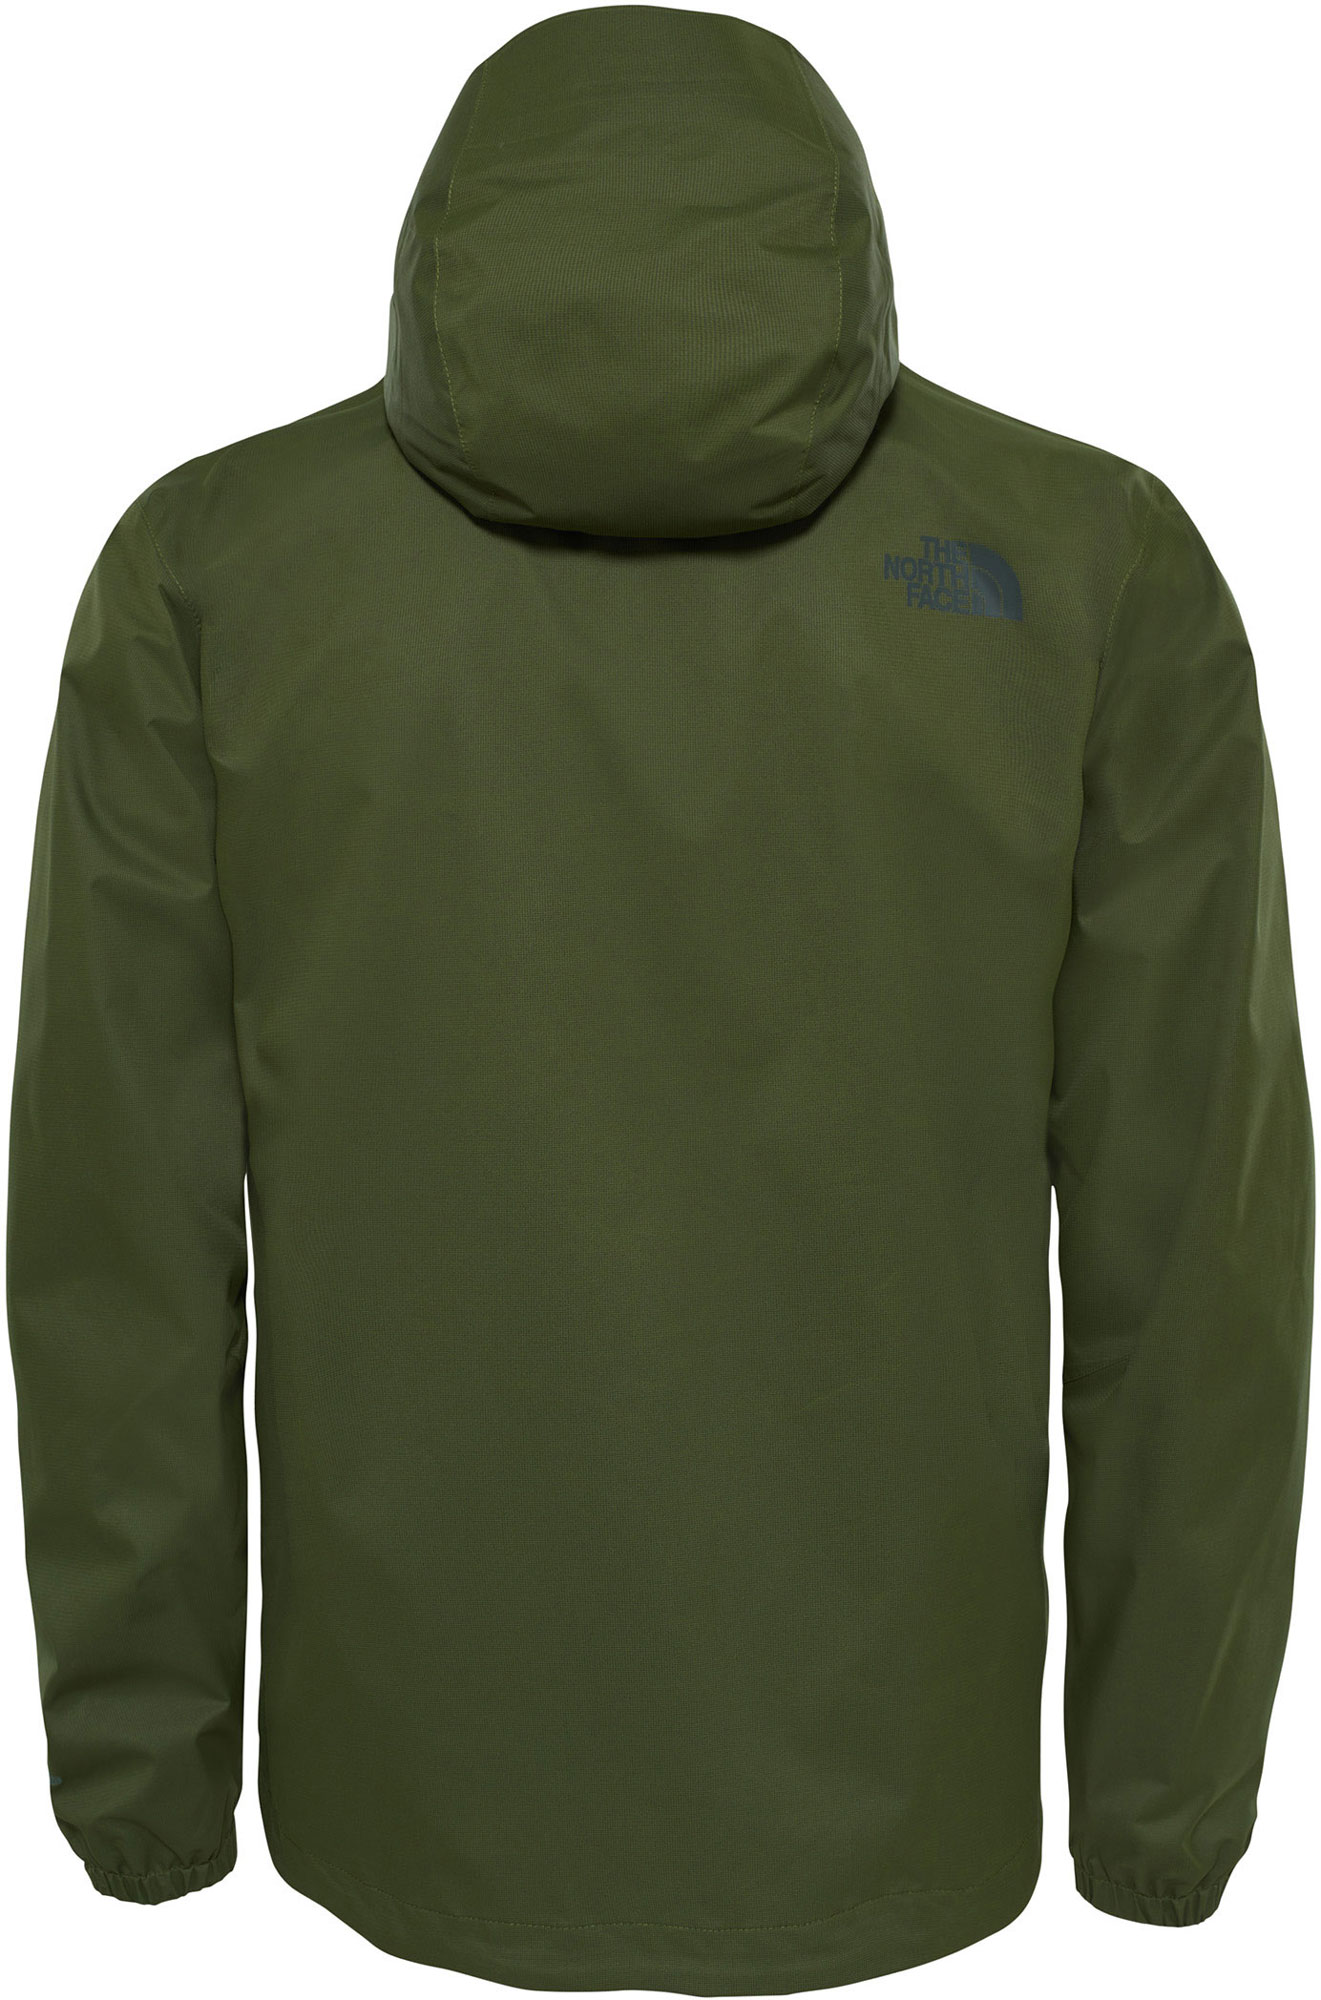 b6cdcce7a5c3 The North Face MEN´S QUEST JACKET. Kurtka wodoodporna męska. Kurtka  wodoodporna męska